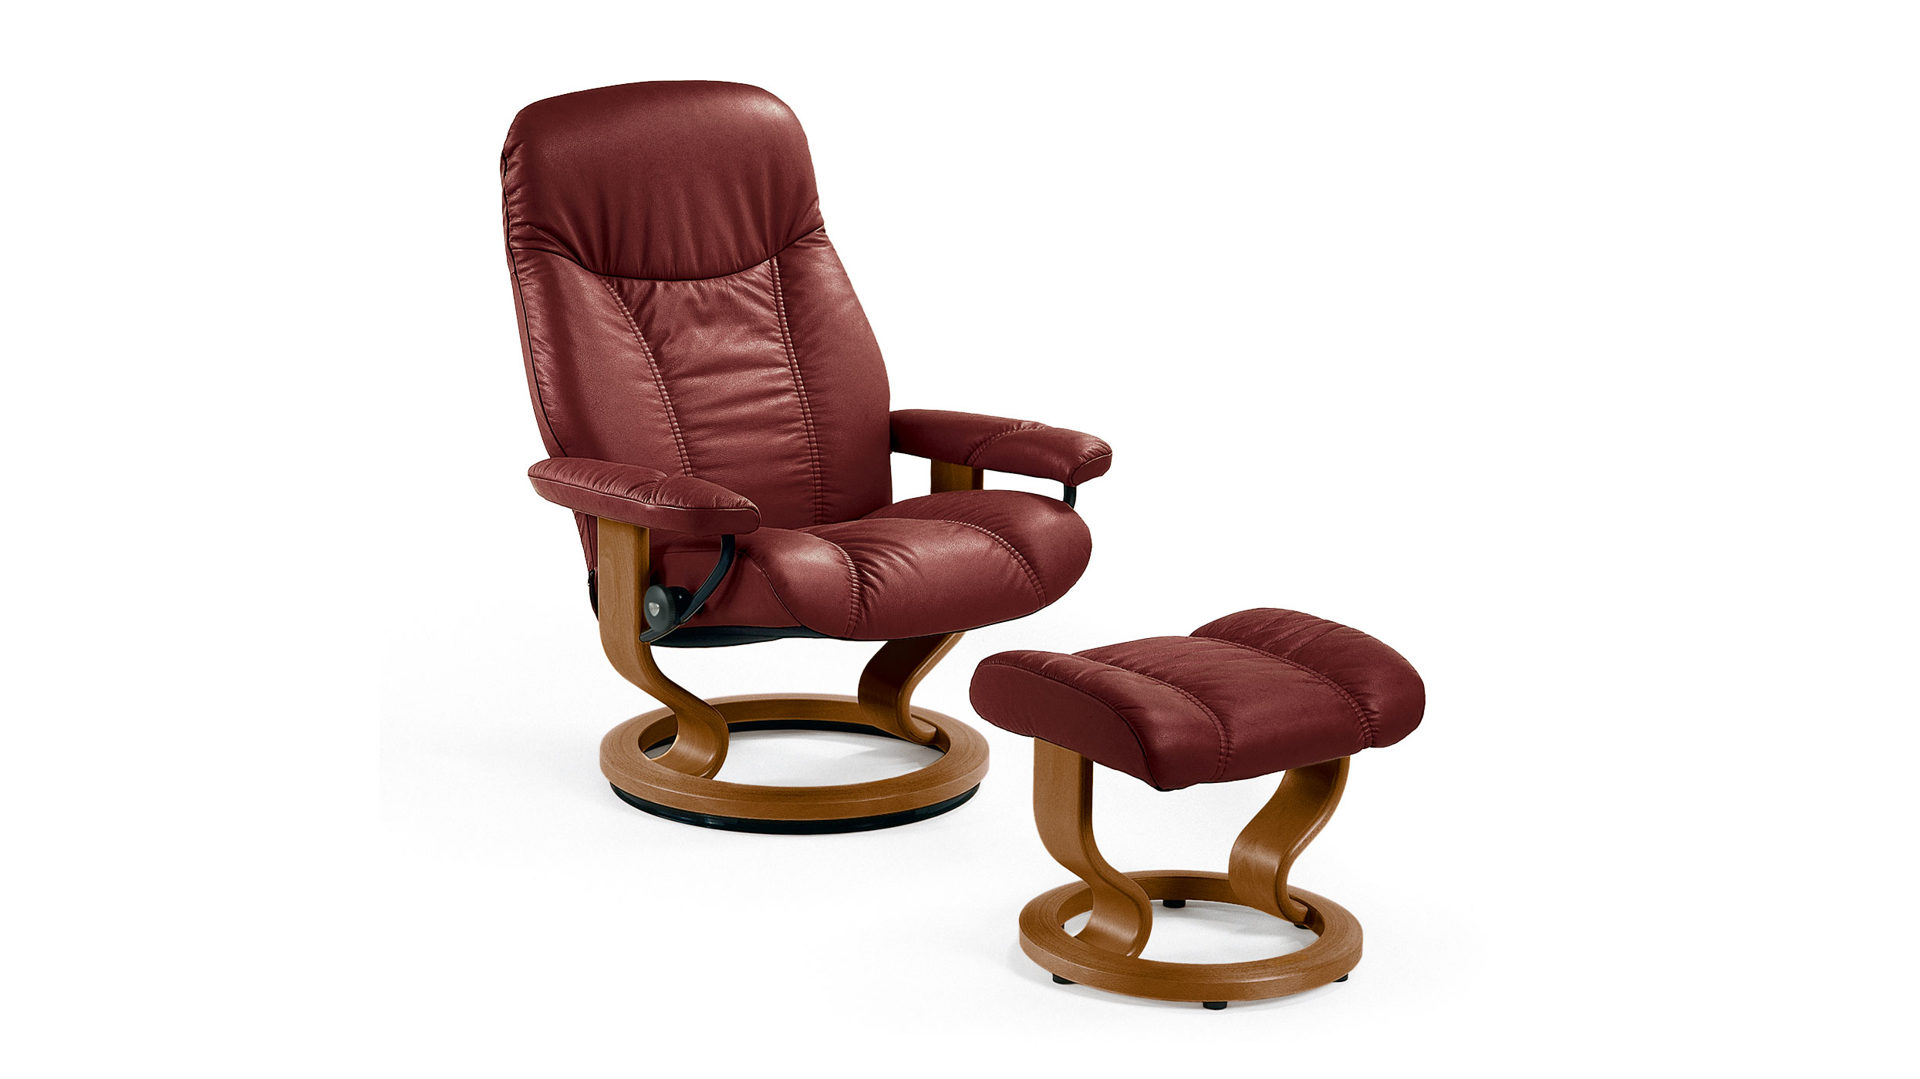 Stressless Ekornes Sessel Stressless Consul M Relax Sessel Und Hocker Leder Medium Leder